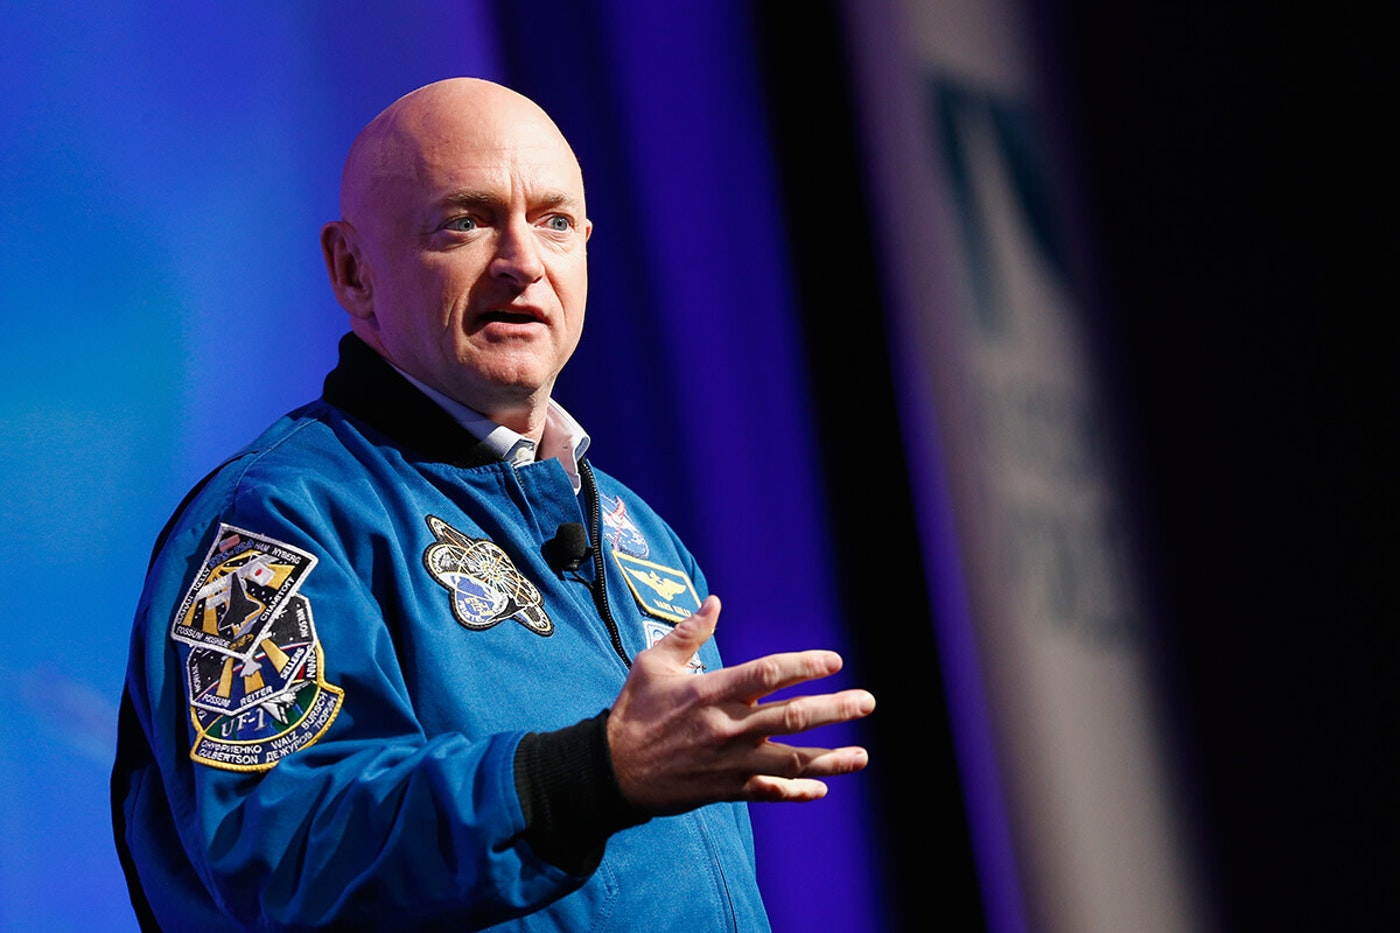 Mark Kelly speaking on a stage